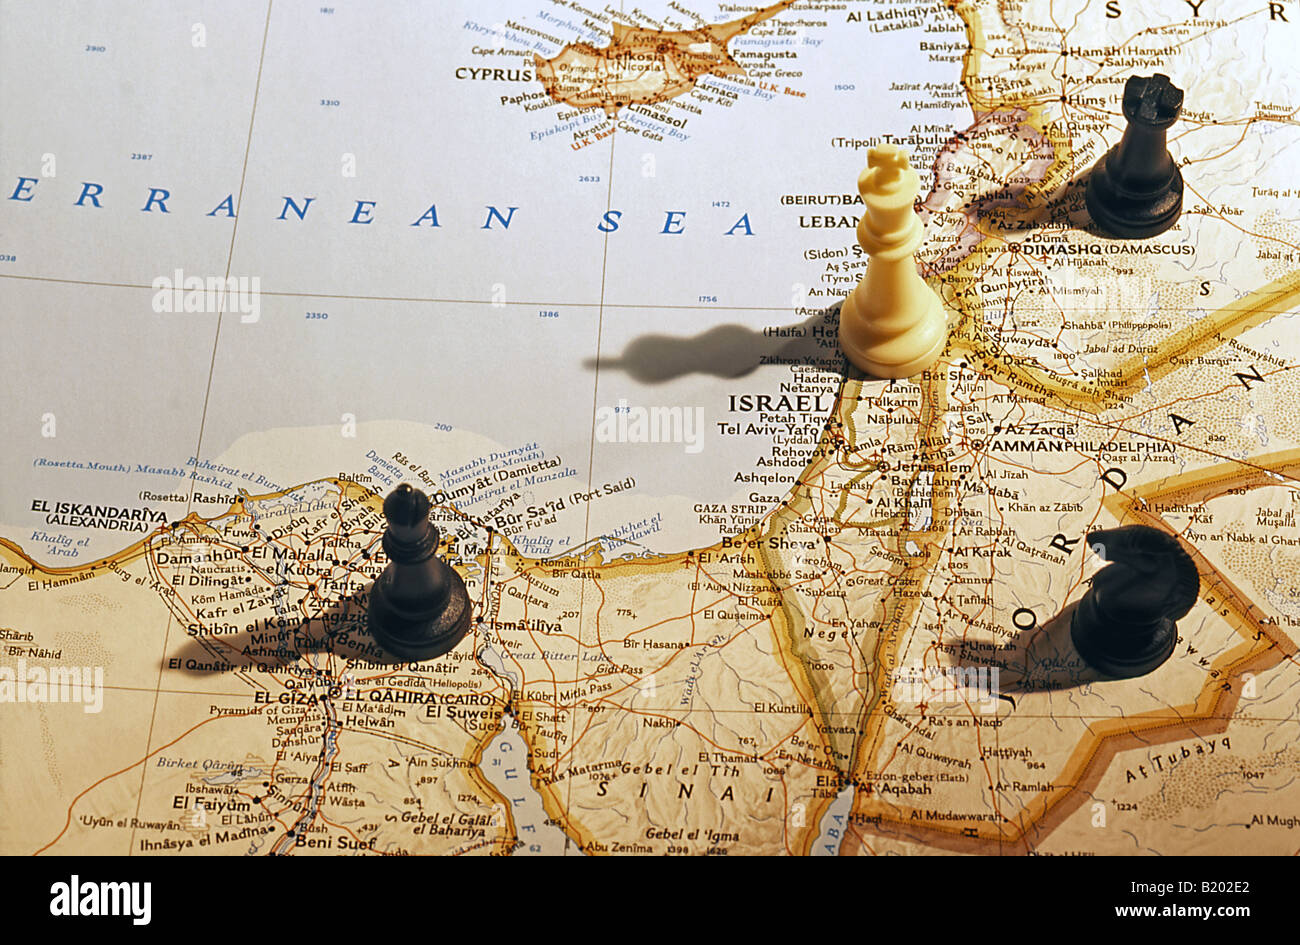 Chess pieces on map of israel egypt jordan and syria stock photo chess pieces on map of israel egypt jordan and syria gumiabroncs Choice Image